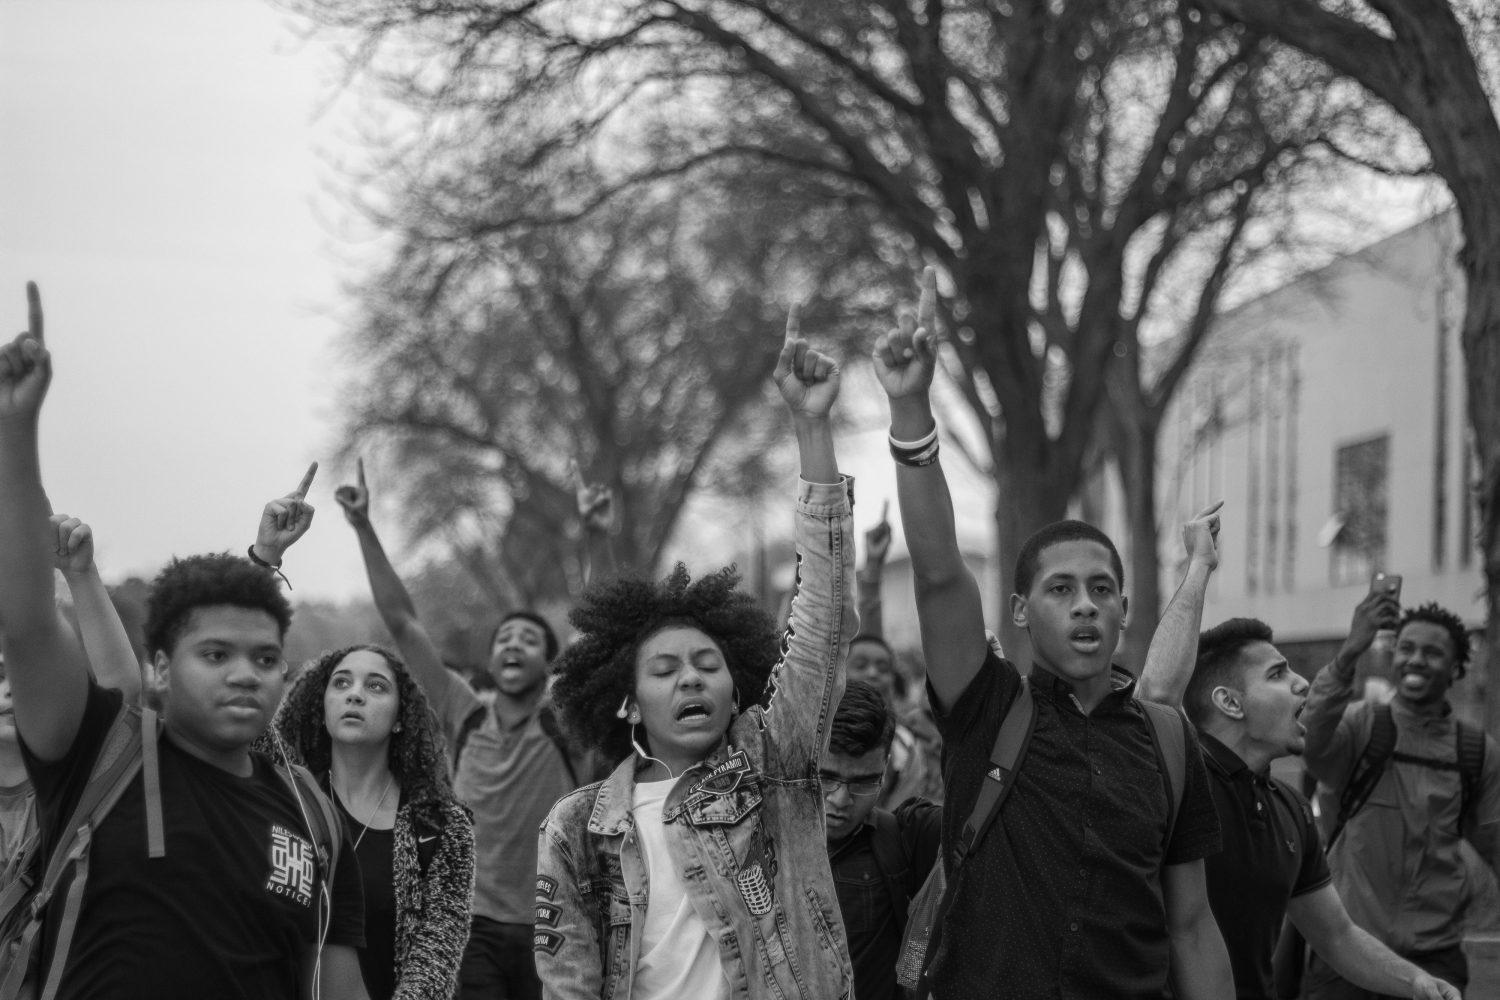 Niles North students stage peaceful walkout in name of equity